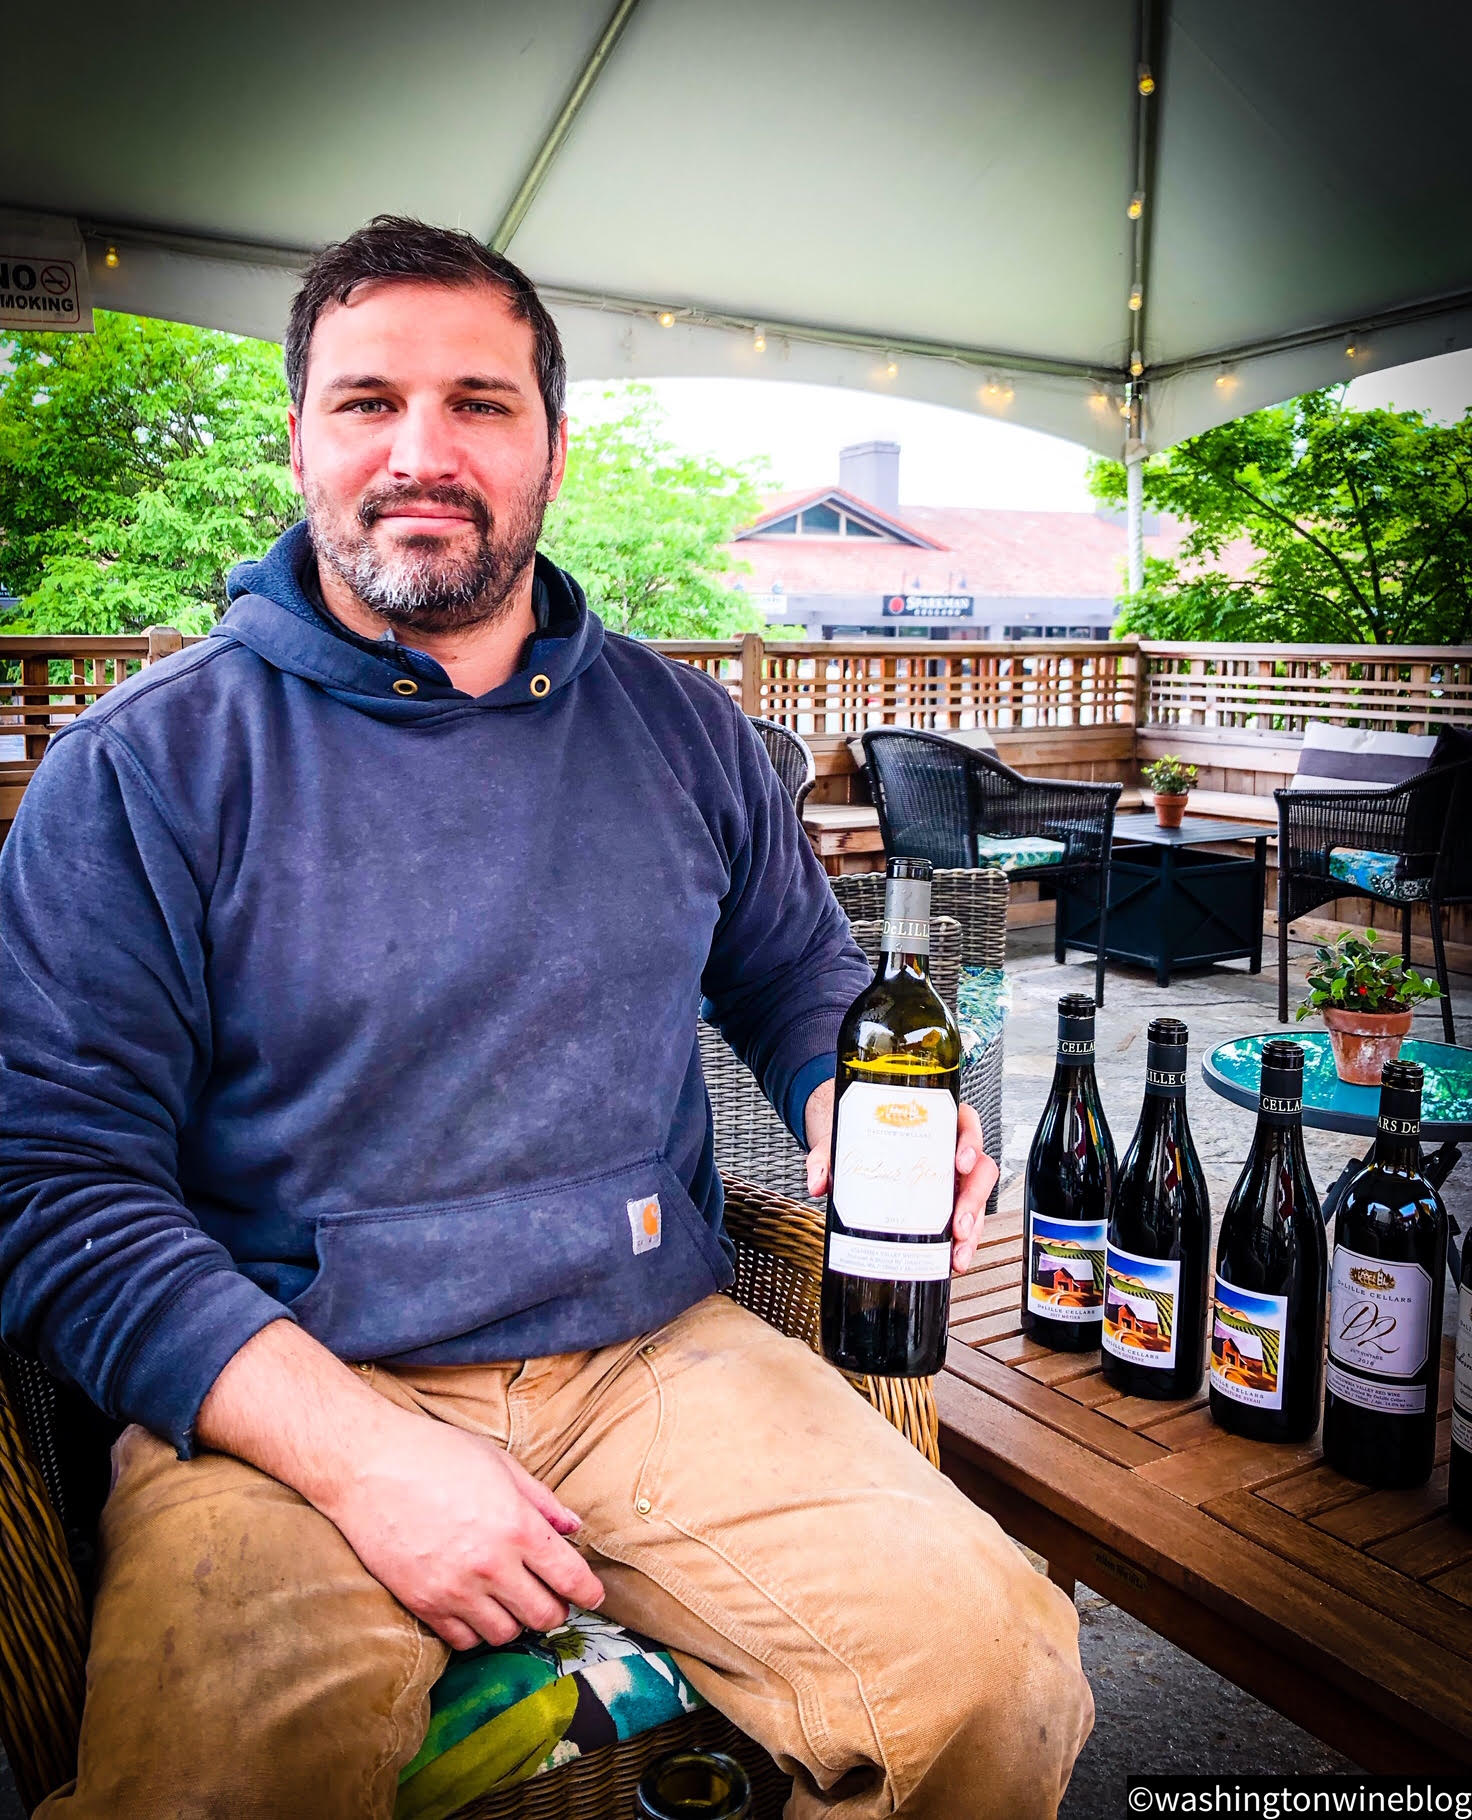 Here we have the talented Jason Gorski with his DeLille Cellars new lineup of wines.